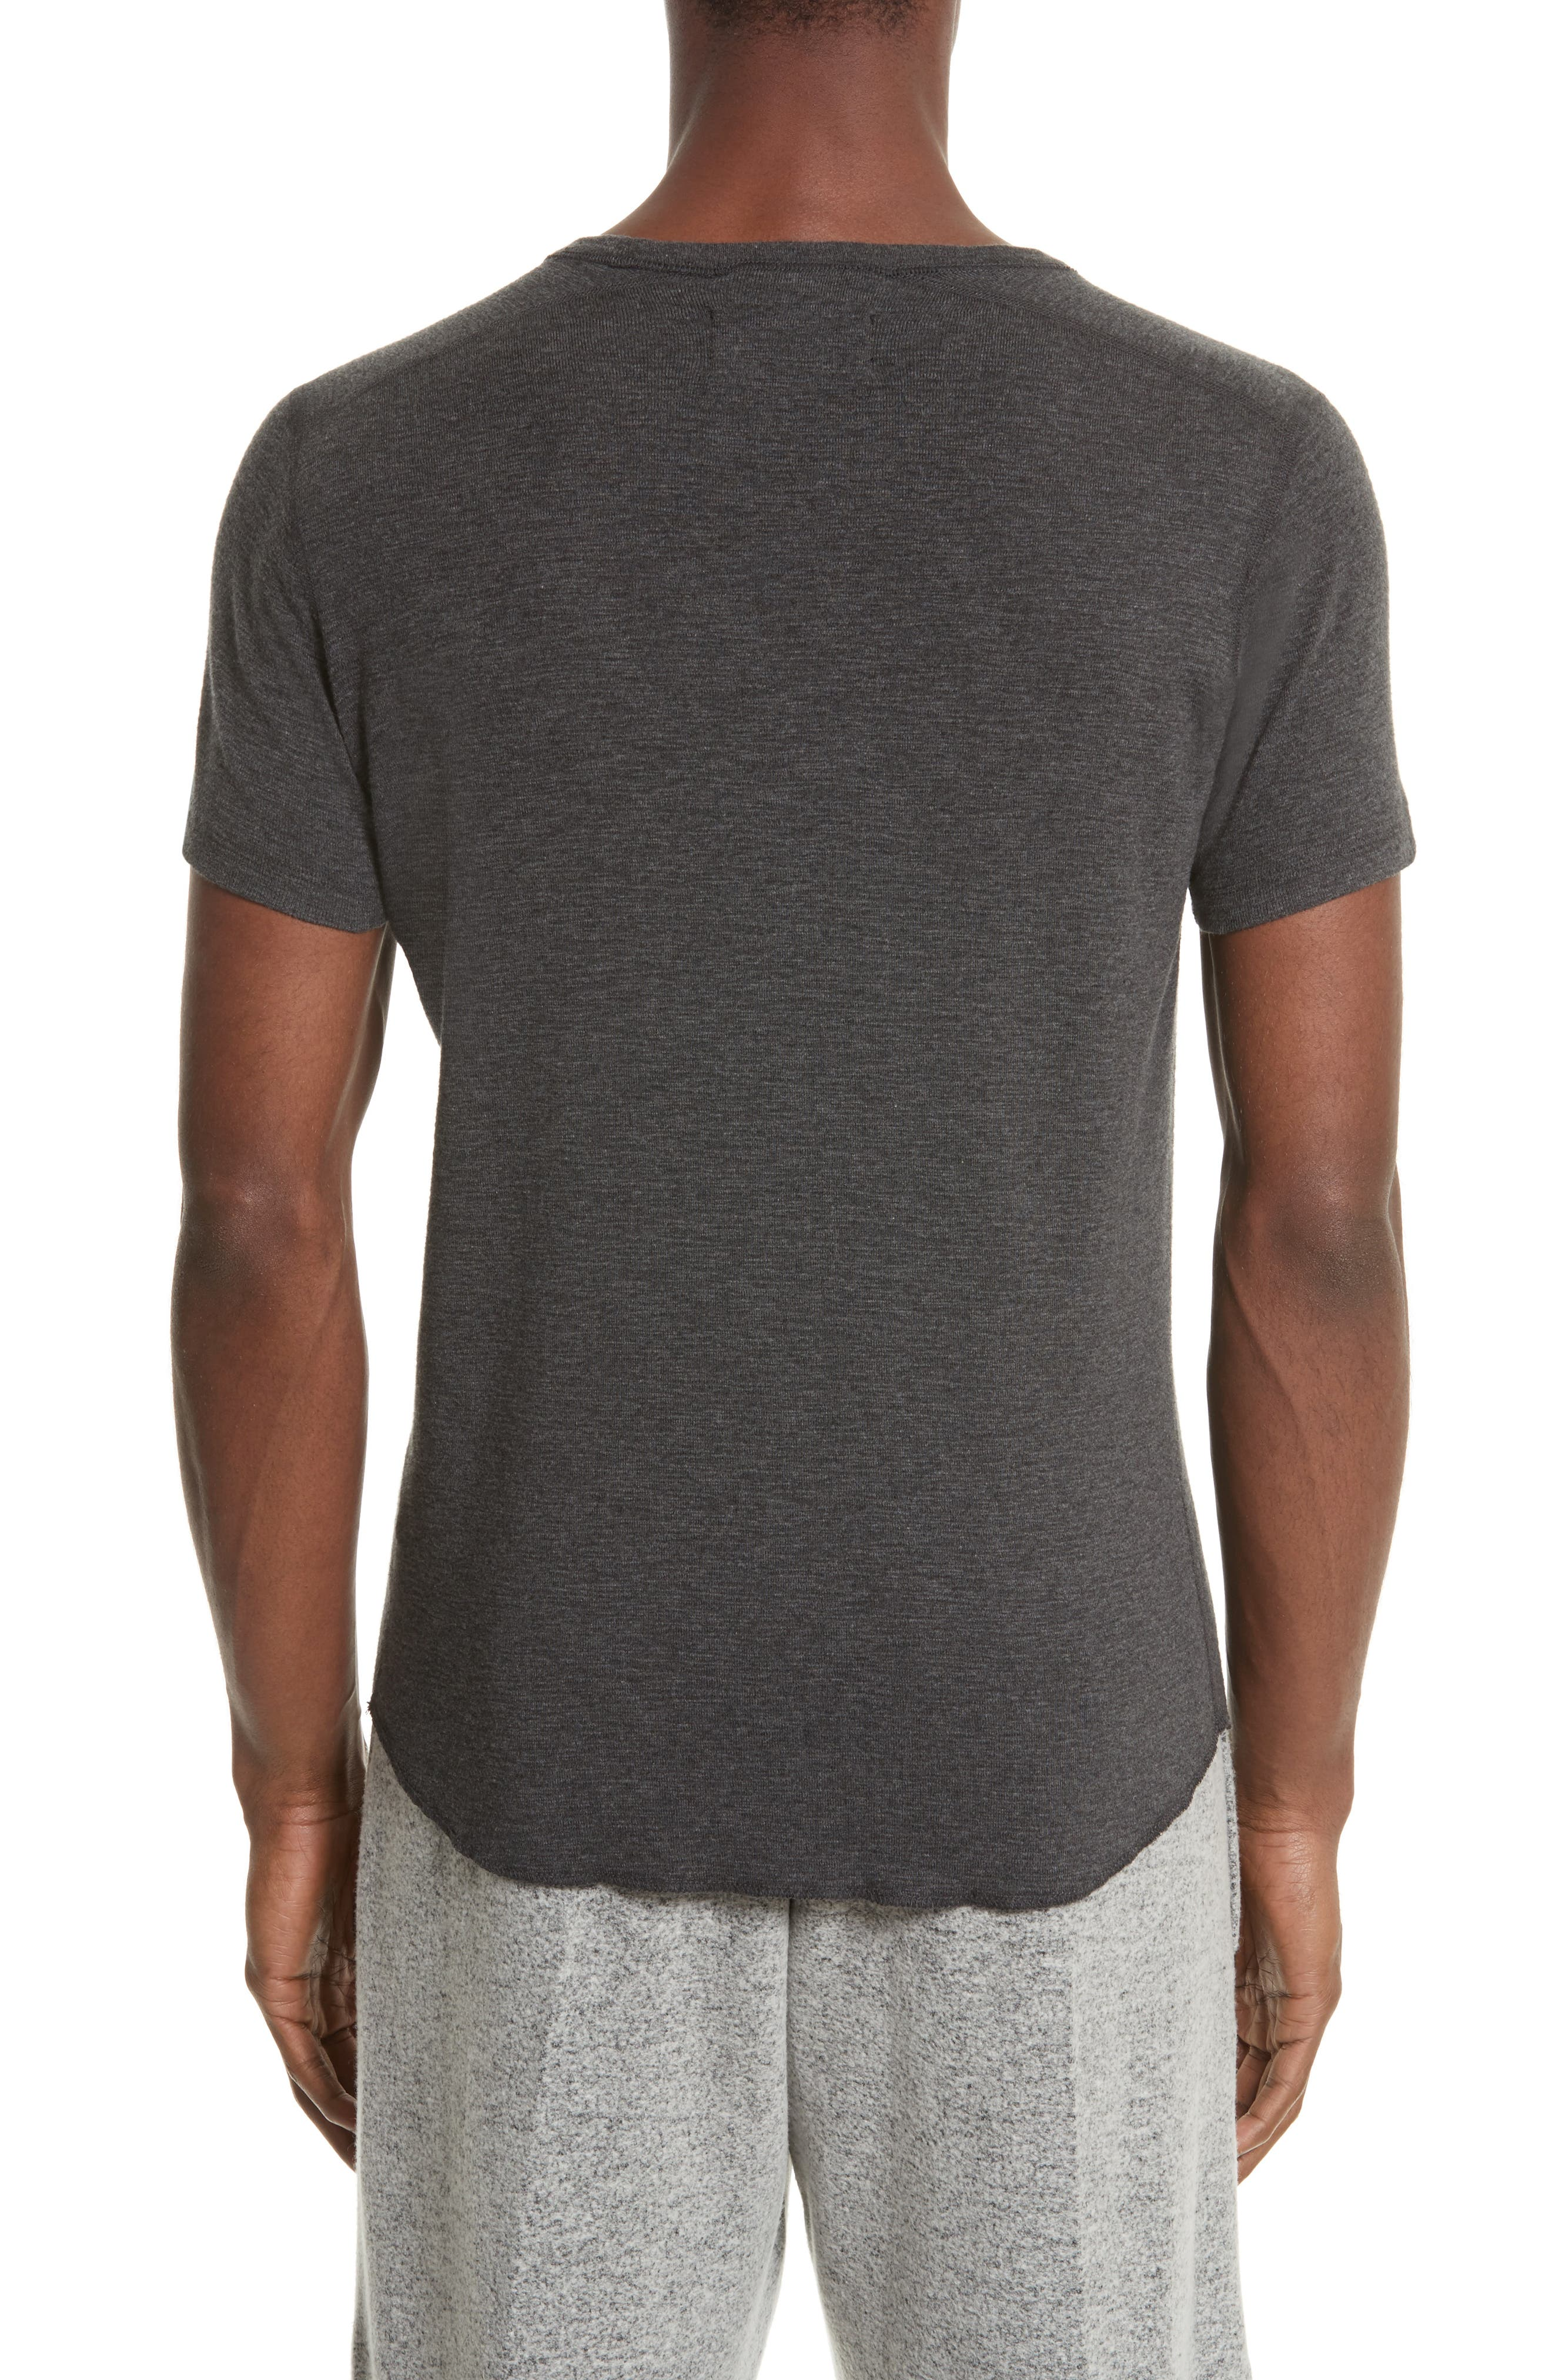 WINGS + HORNS, Ribbed Slub Cotton T-Shirt, Alternate thumbnail 2, color, HEATHER CHARCOAL